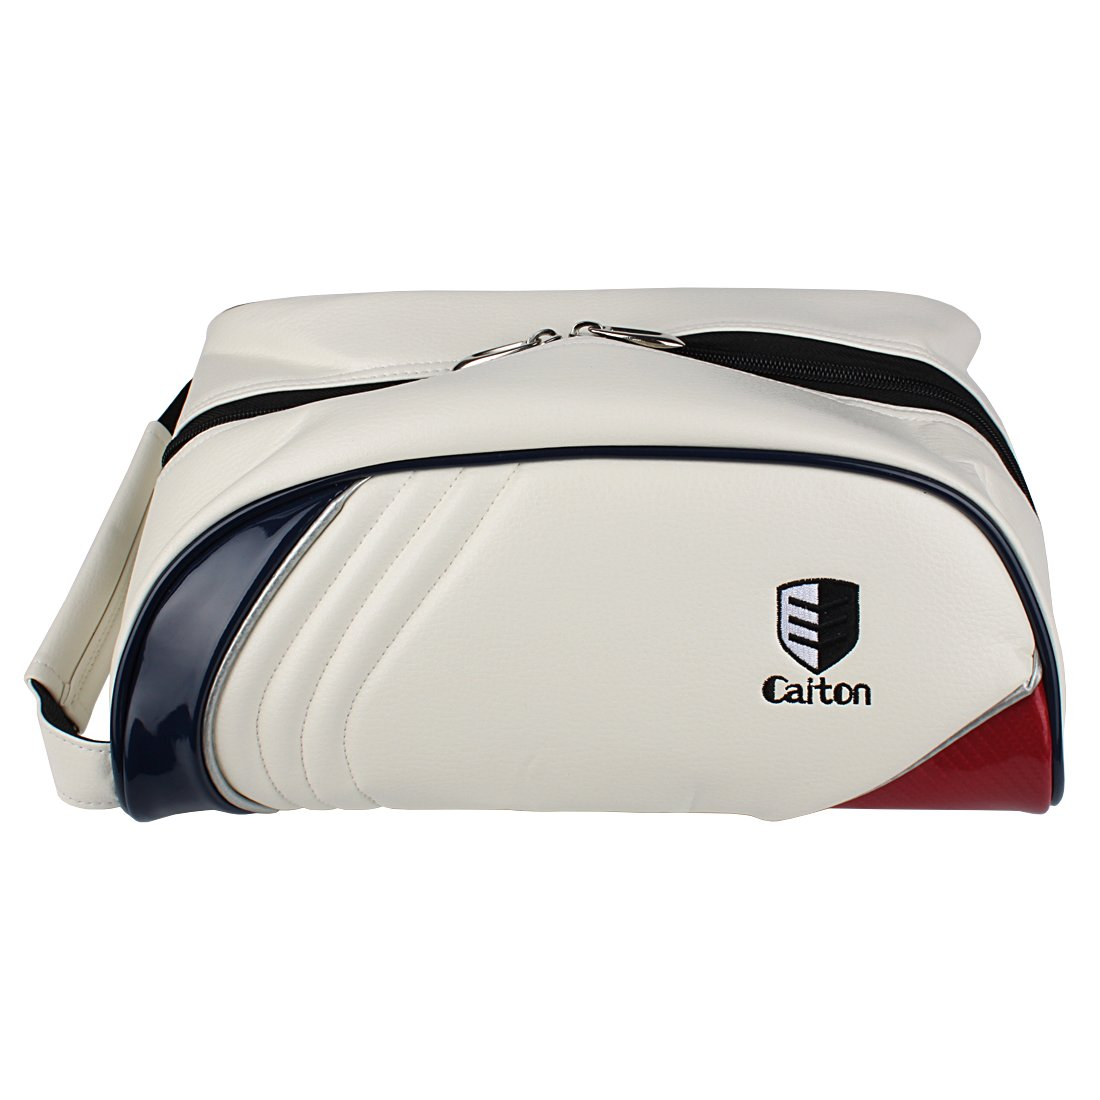 Andux Golf Shoes Bag Sports Accessories Collection Tote GEFXB-01 by Andux (Image #5)